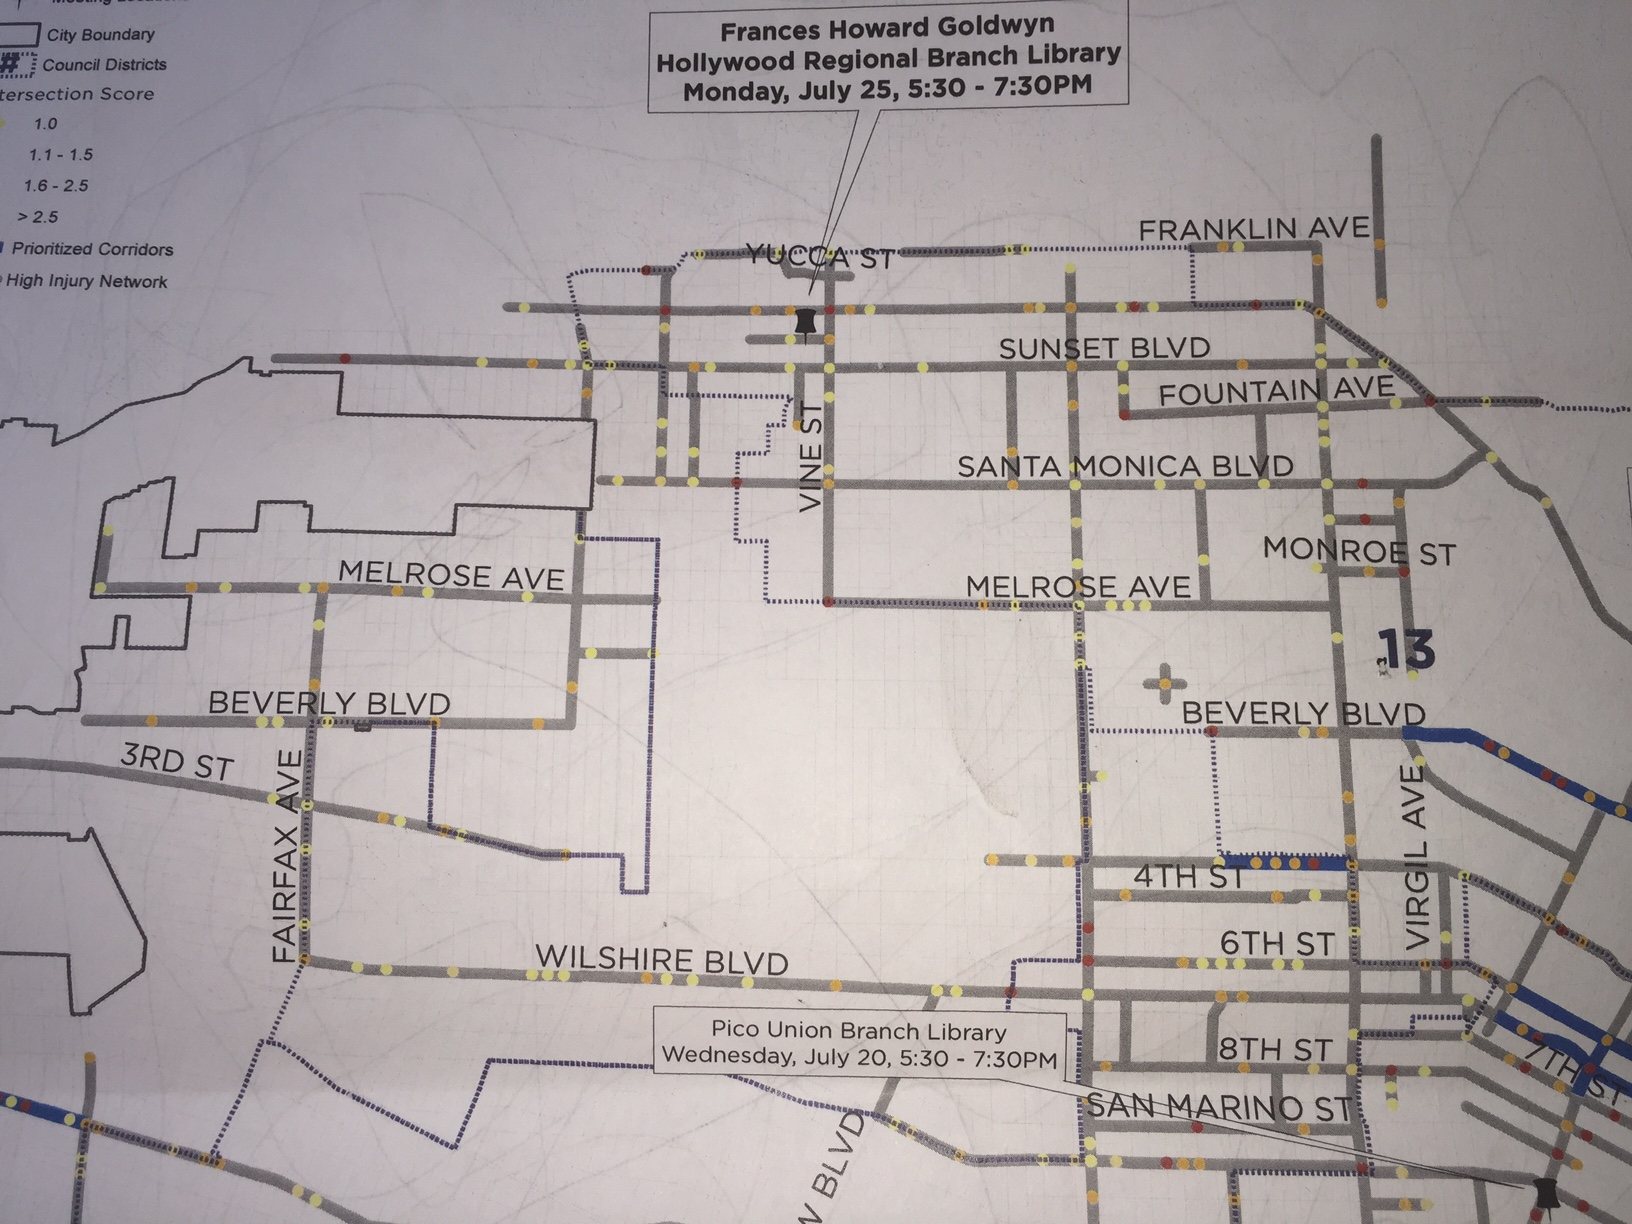 Vision Zero High Injury Network prioritized intersections/corridors detail map centered on Hollywood